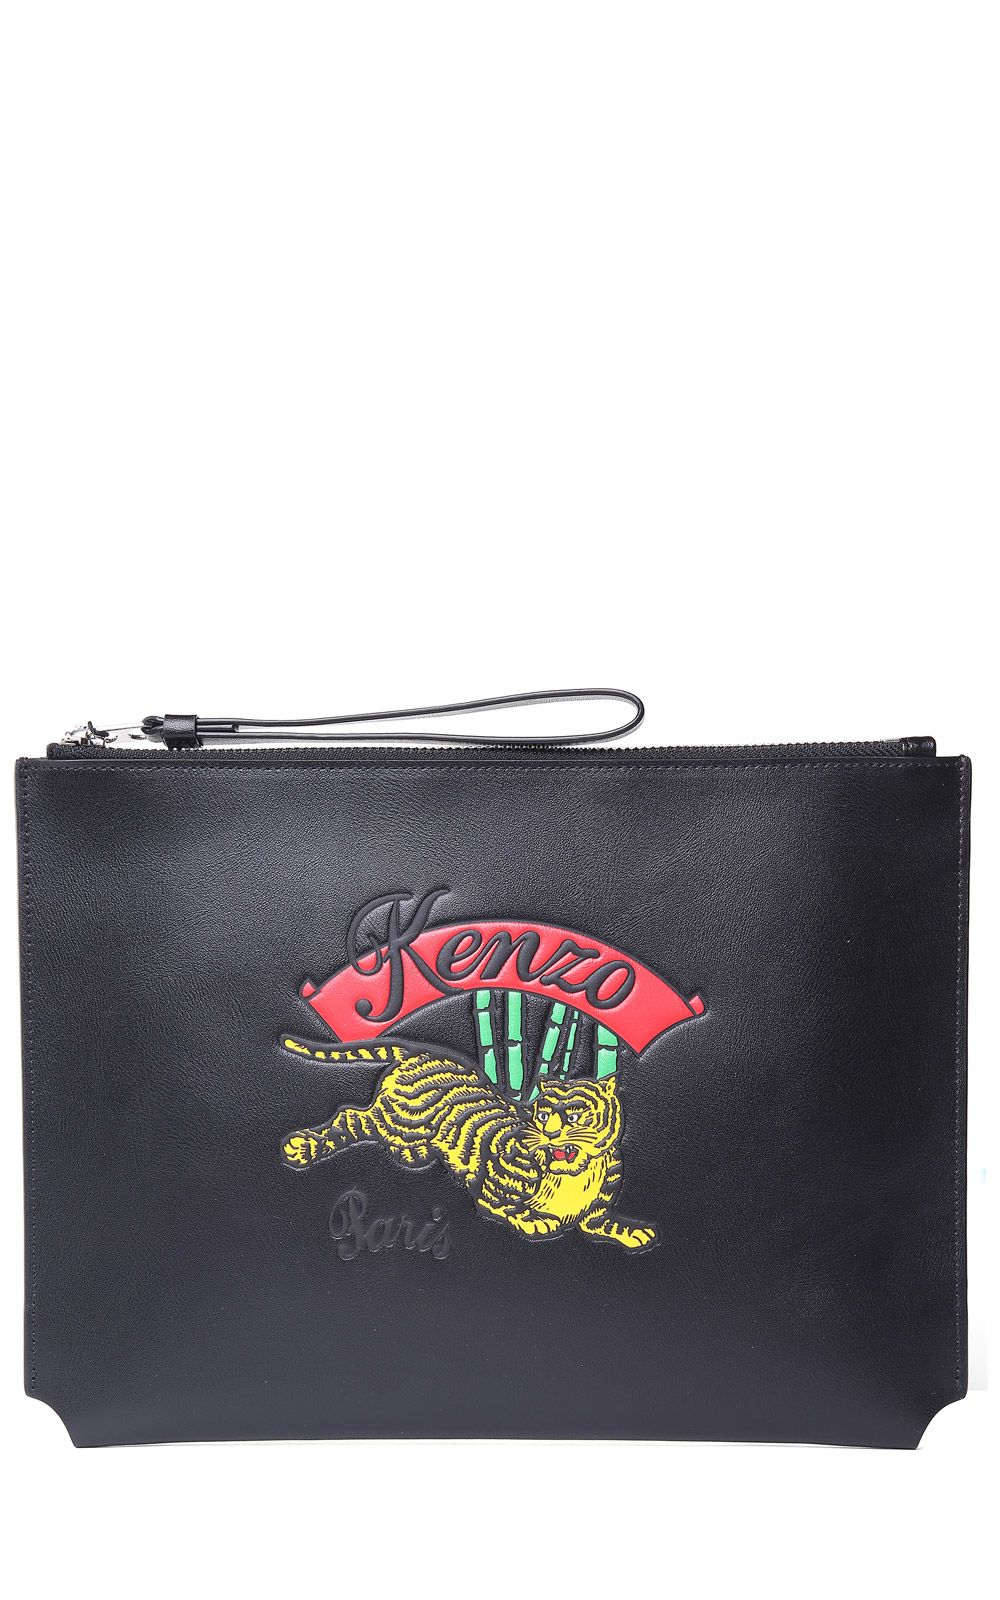 JUMPING TIGER LEATHER CLUTCH